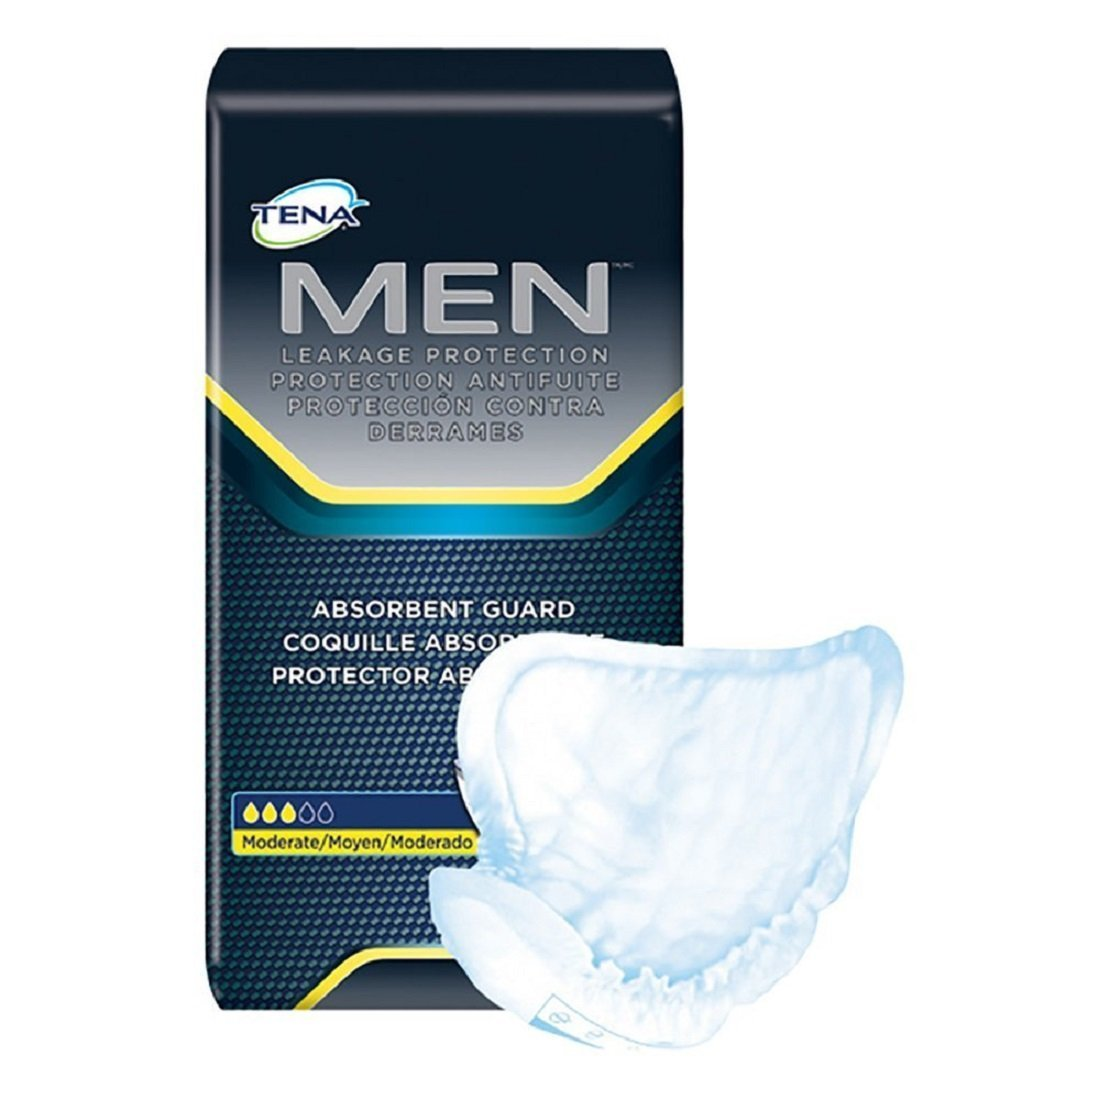 Tena 50600 For Men Moderate/Light Pads 120/Case product image